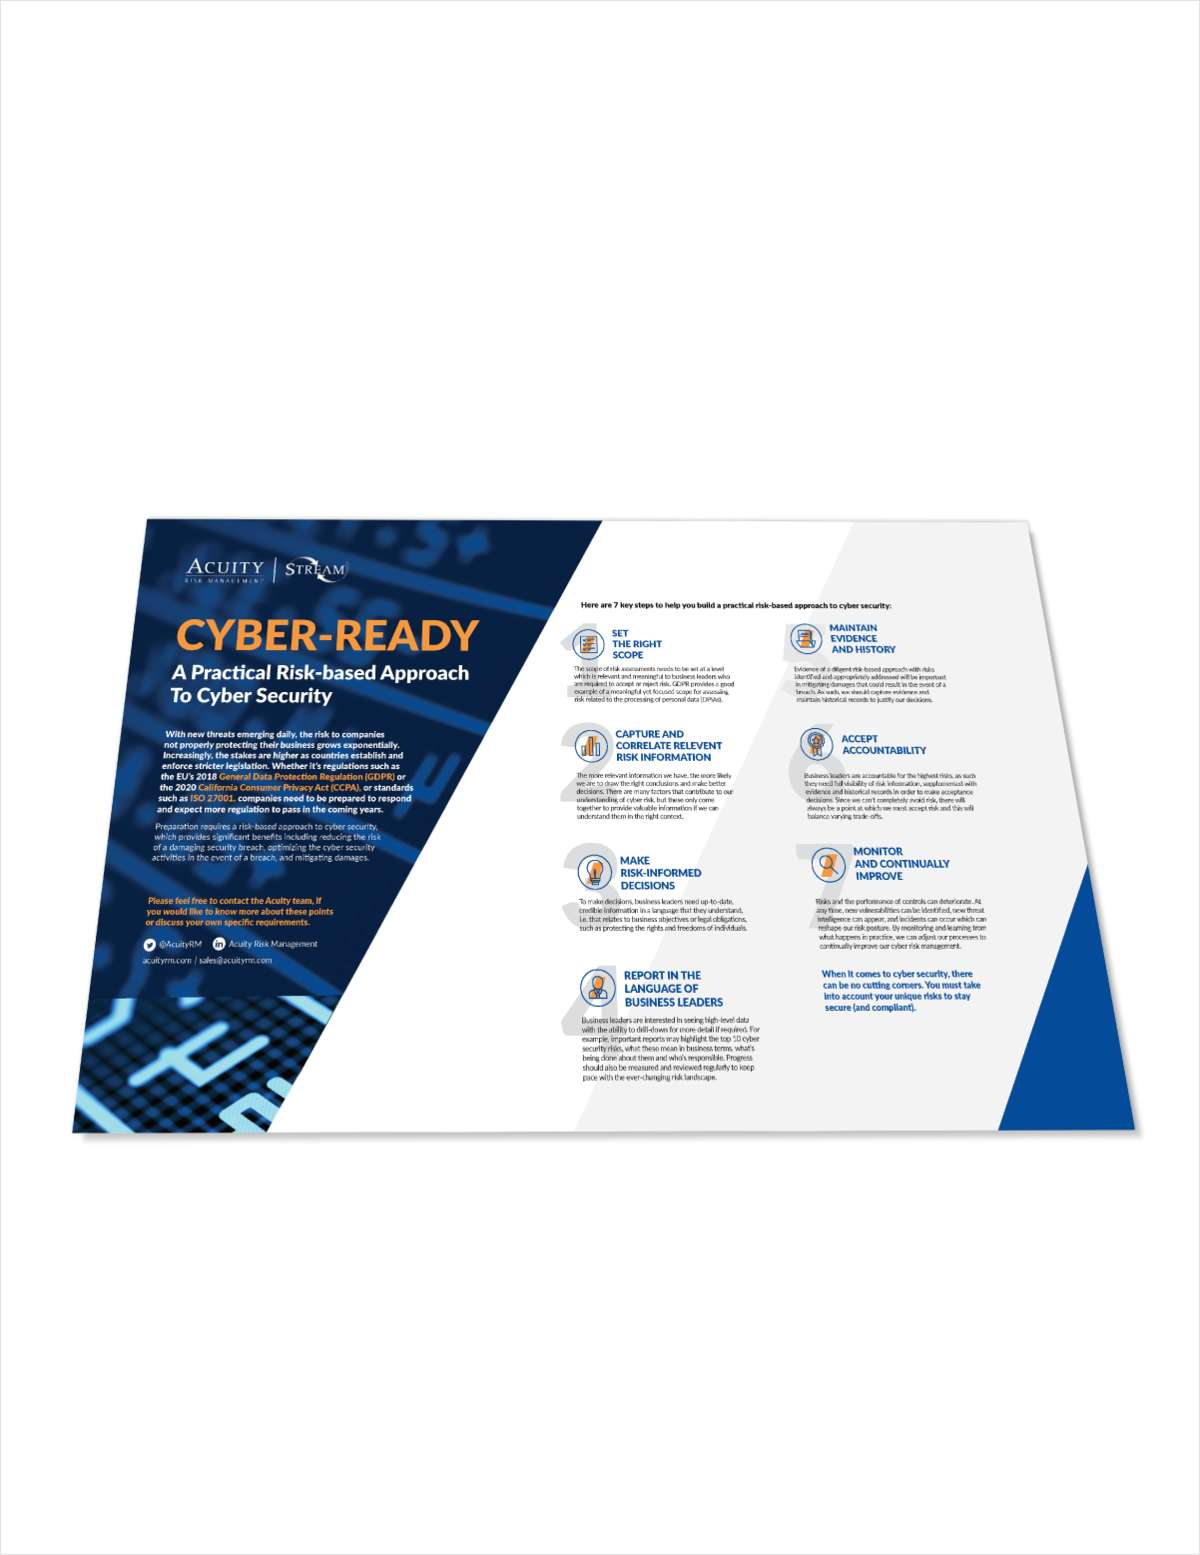 Cyber-Ready: 7 Steps to a Risk Based Approach